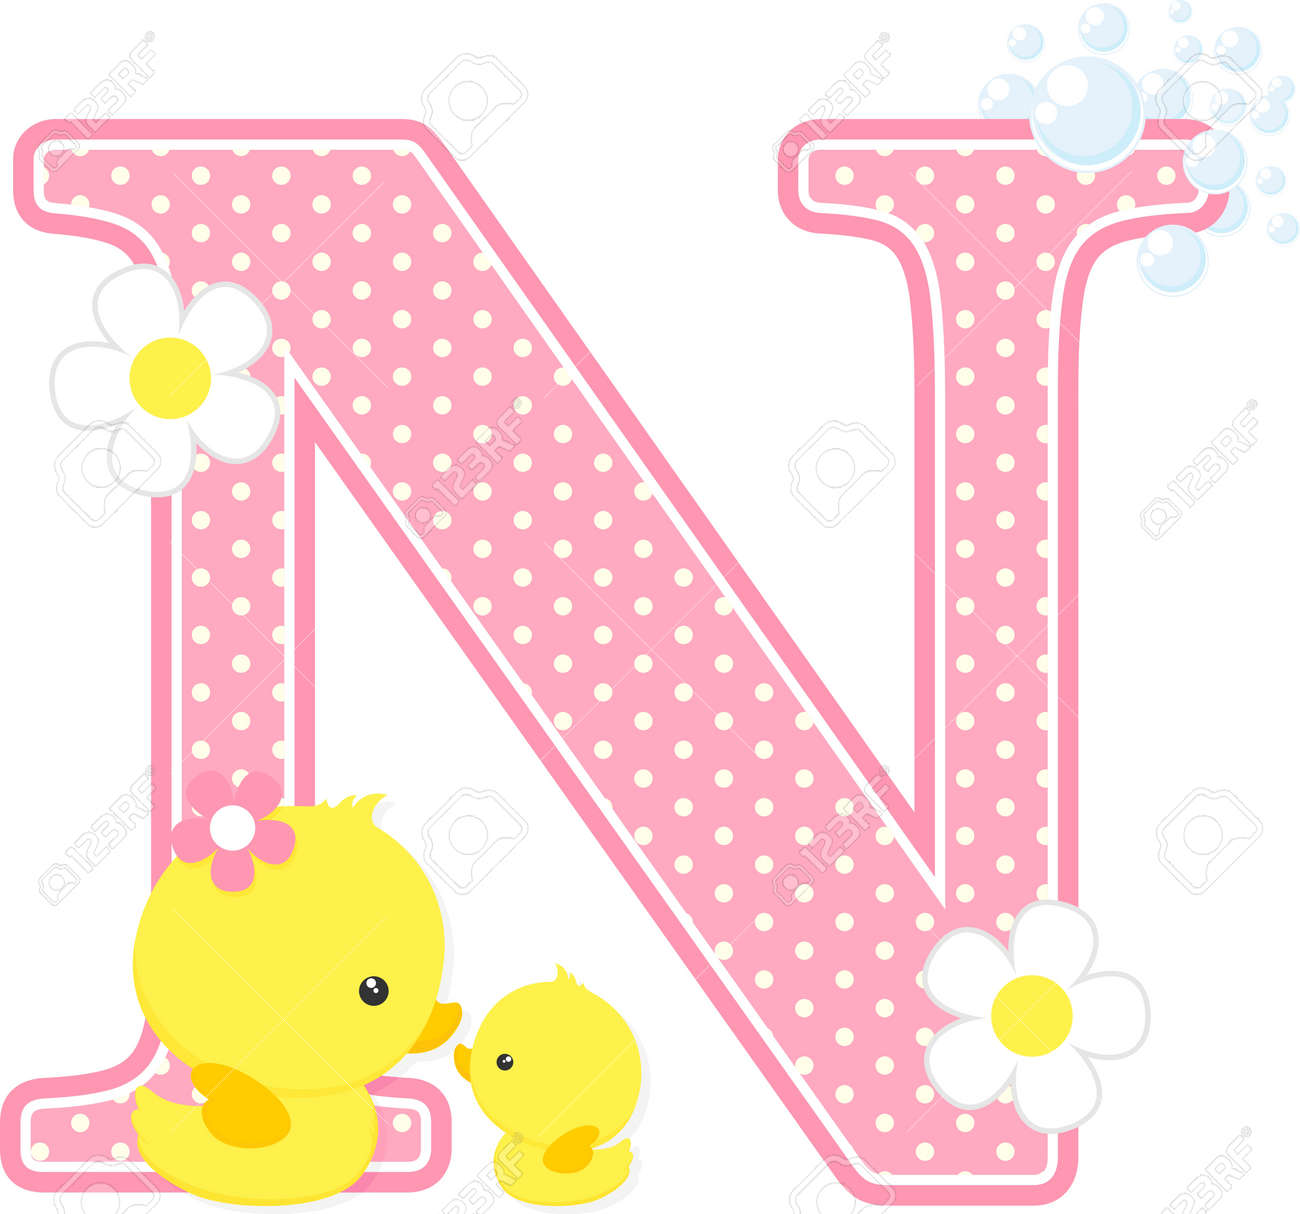 pink dotted letter n initial with flowers and bubbles design royalty